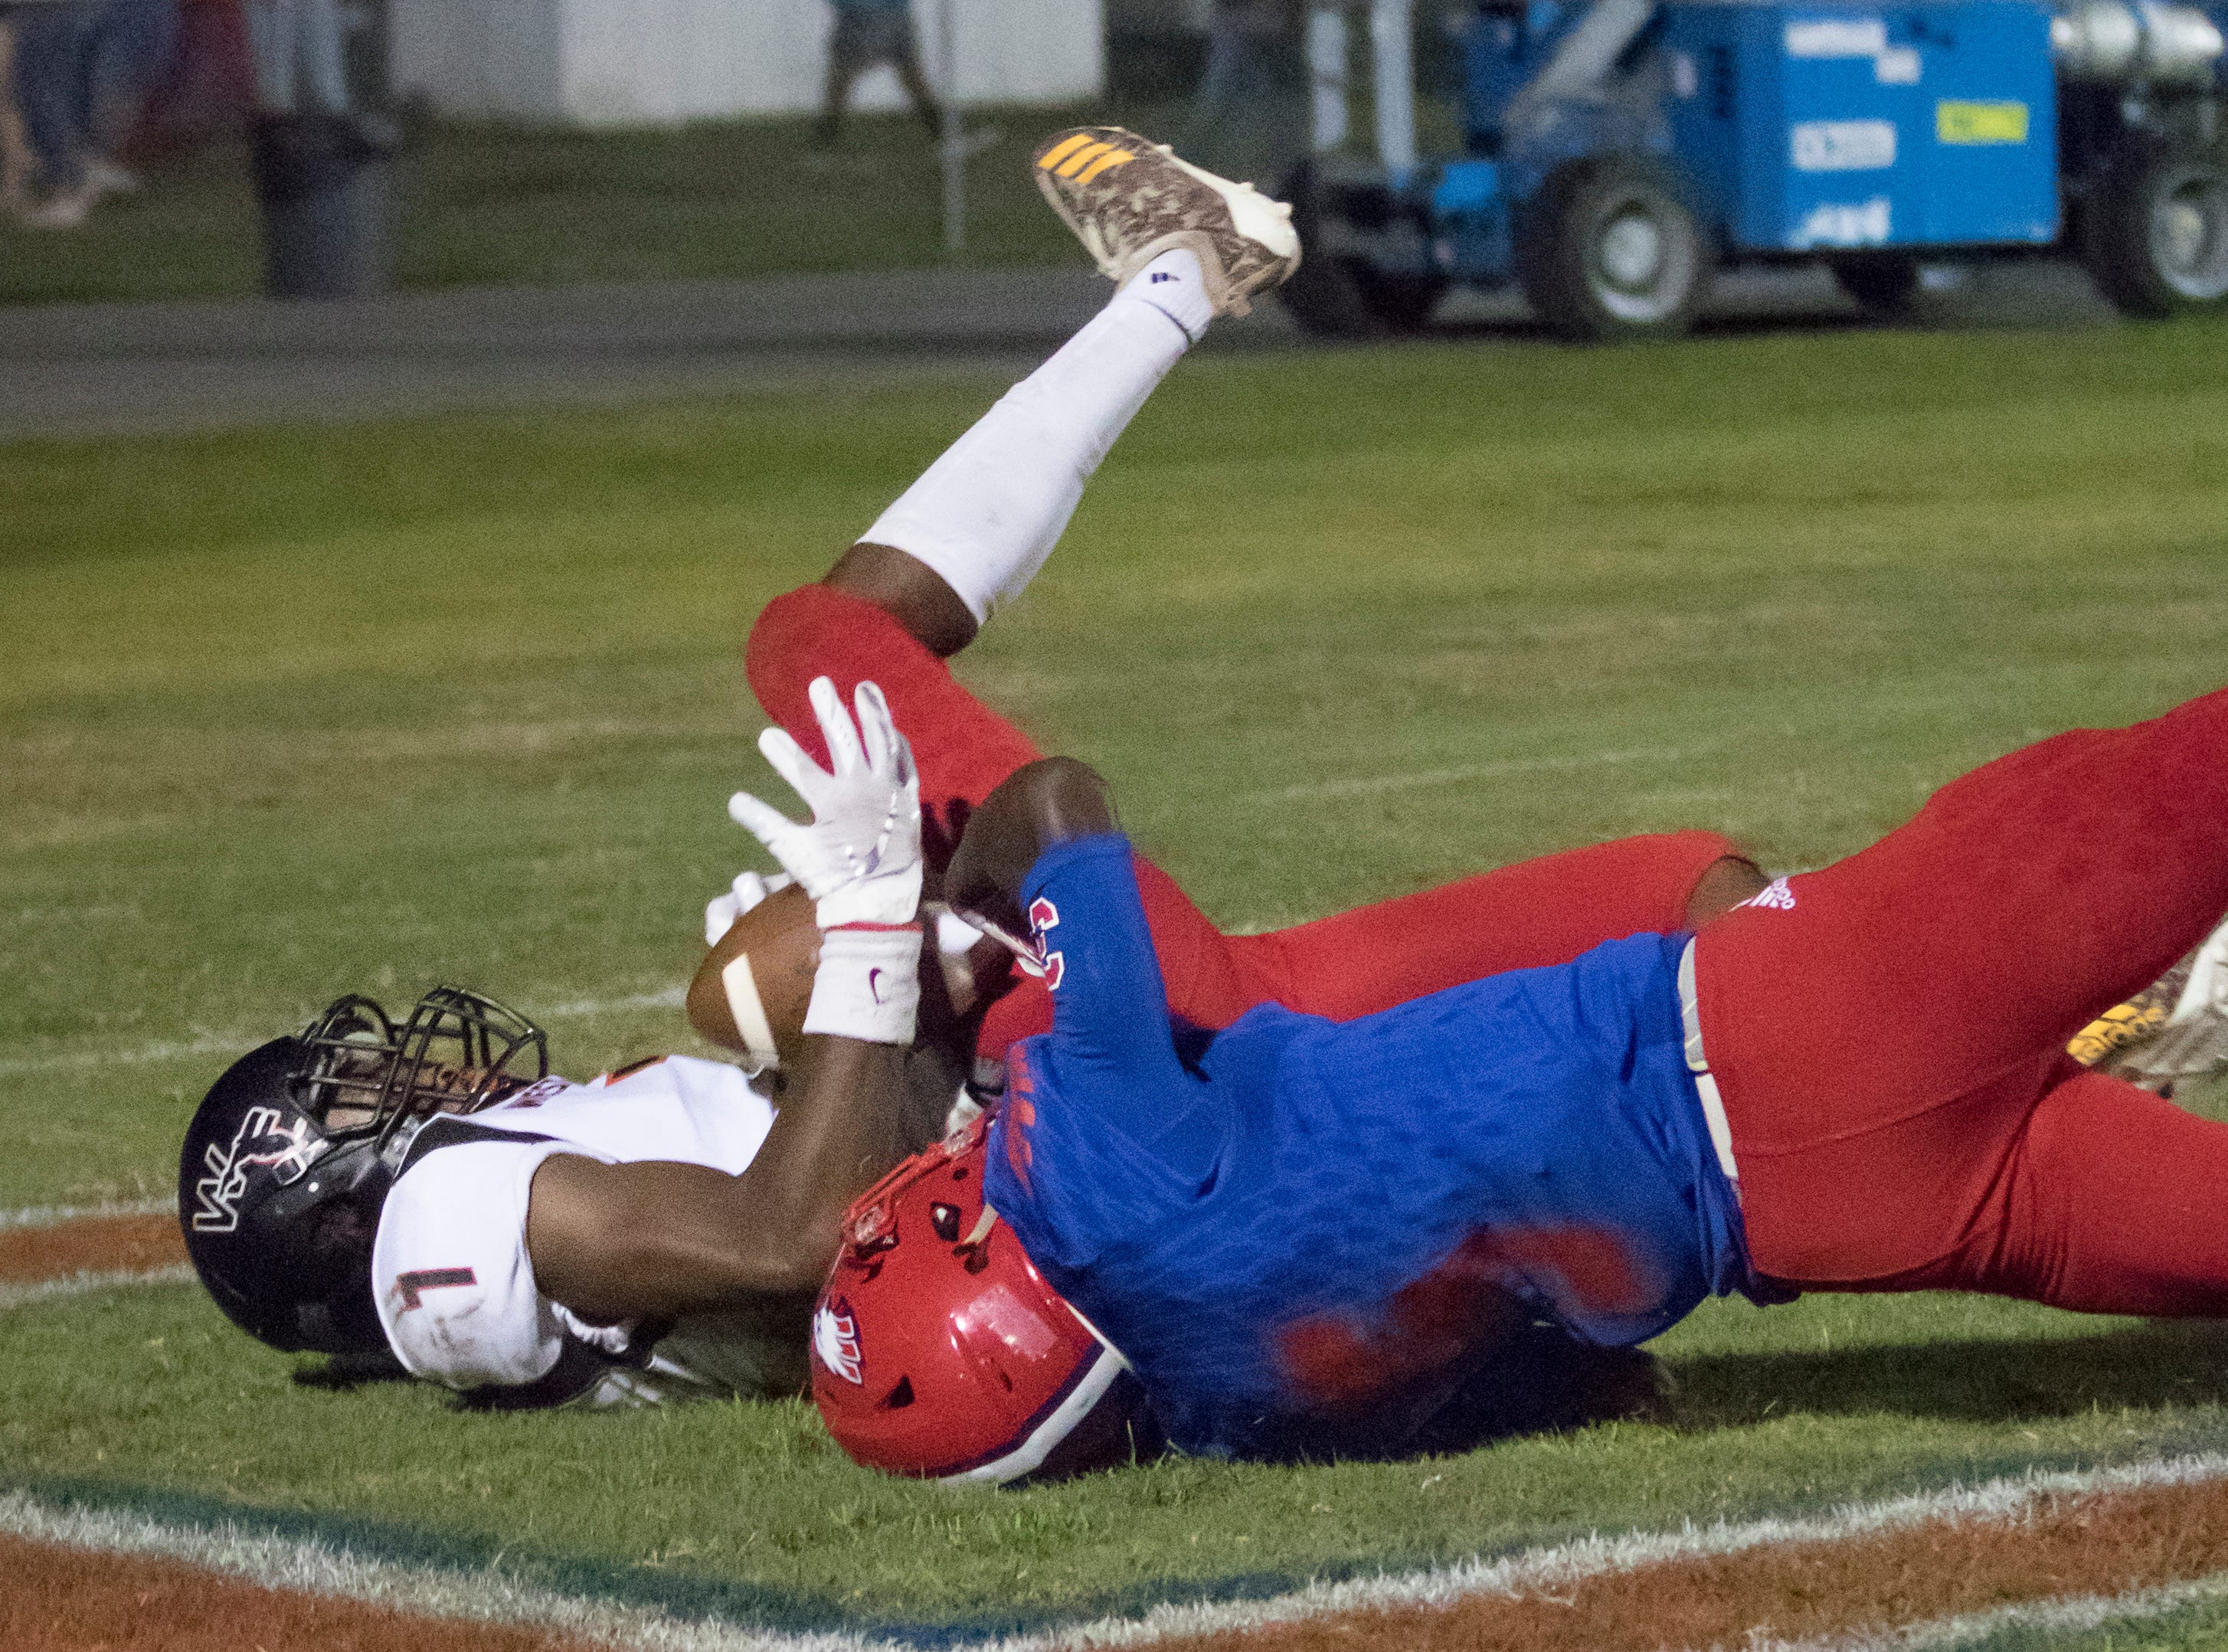 Keion Burrell (7) holds onto the pass for a touchdown during the West Florida vs Pine Forest football game at Pine Forest High School in Pensacola on Friday, October 5, 2018.  The Eagles lead was 14-12 after the Jaguars' 2 point attempt failed.